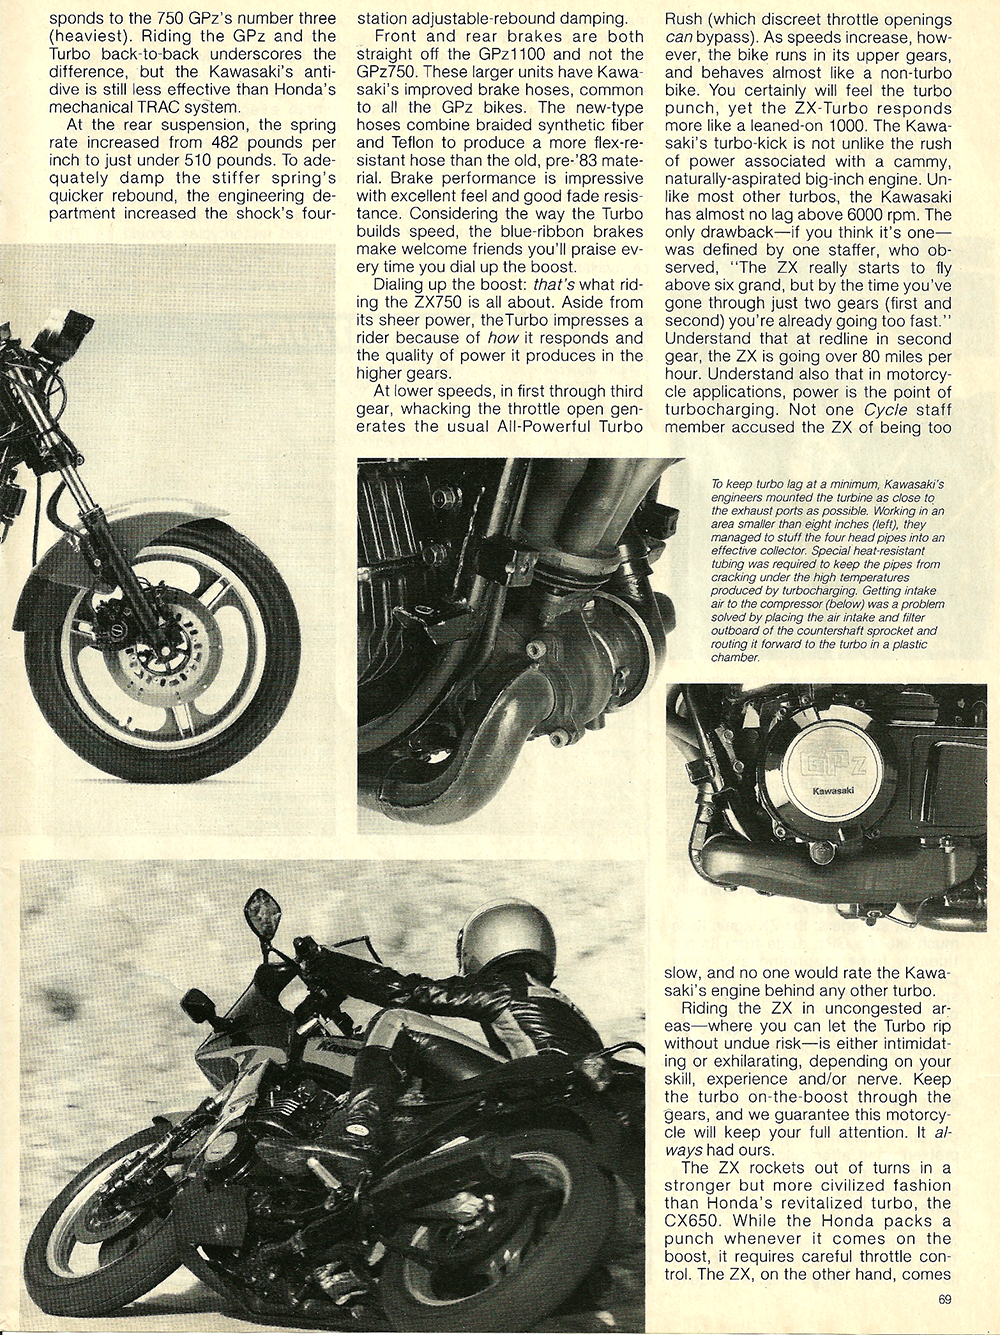 1984 Kawasaki ZX750E1 turbo road test 6.jpg